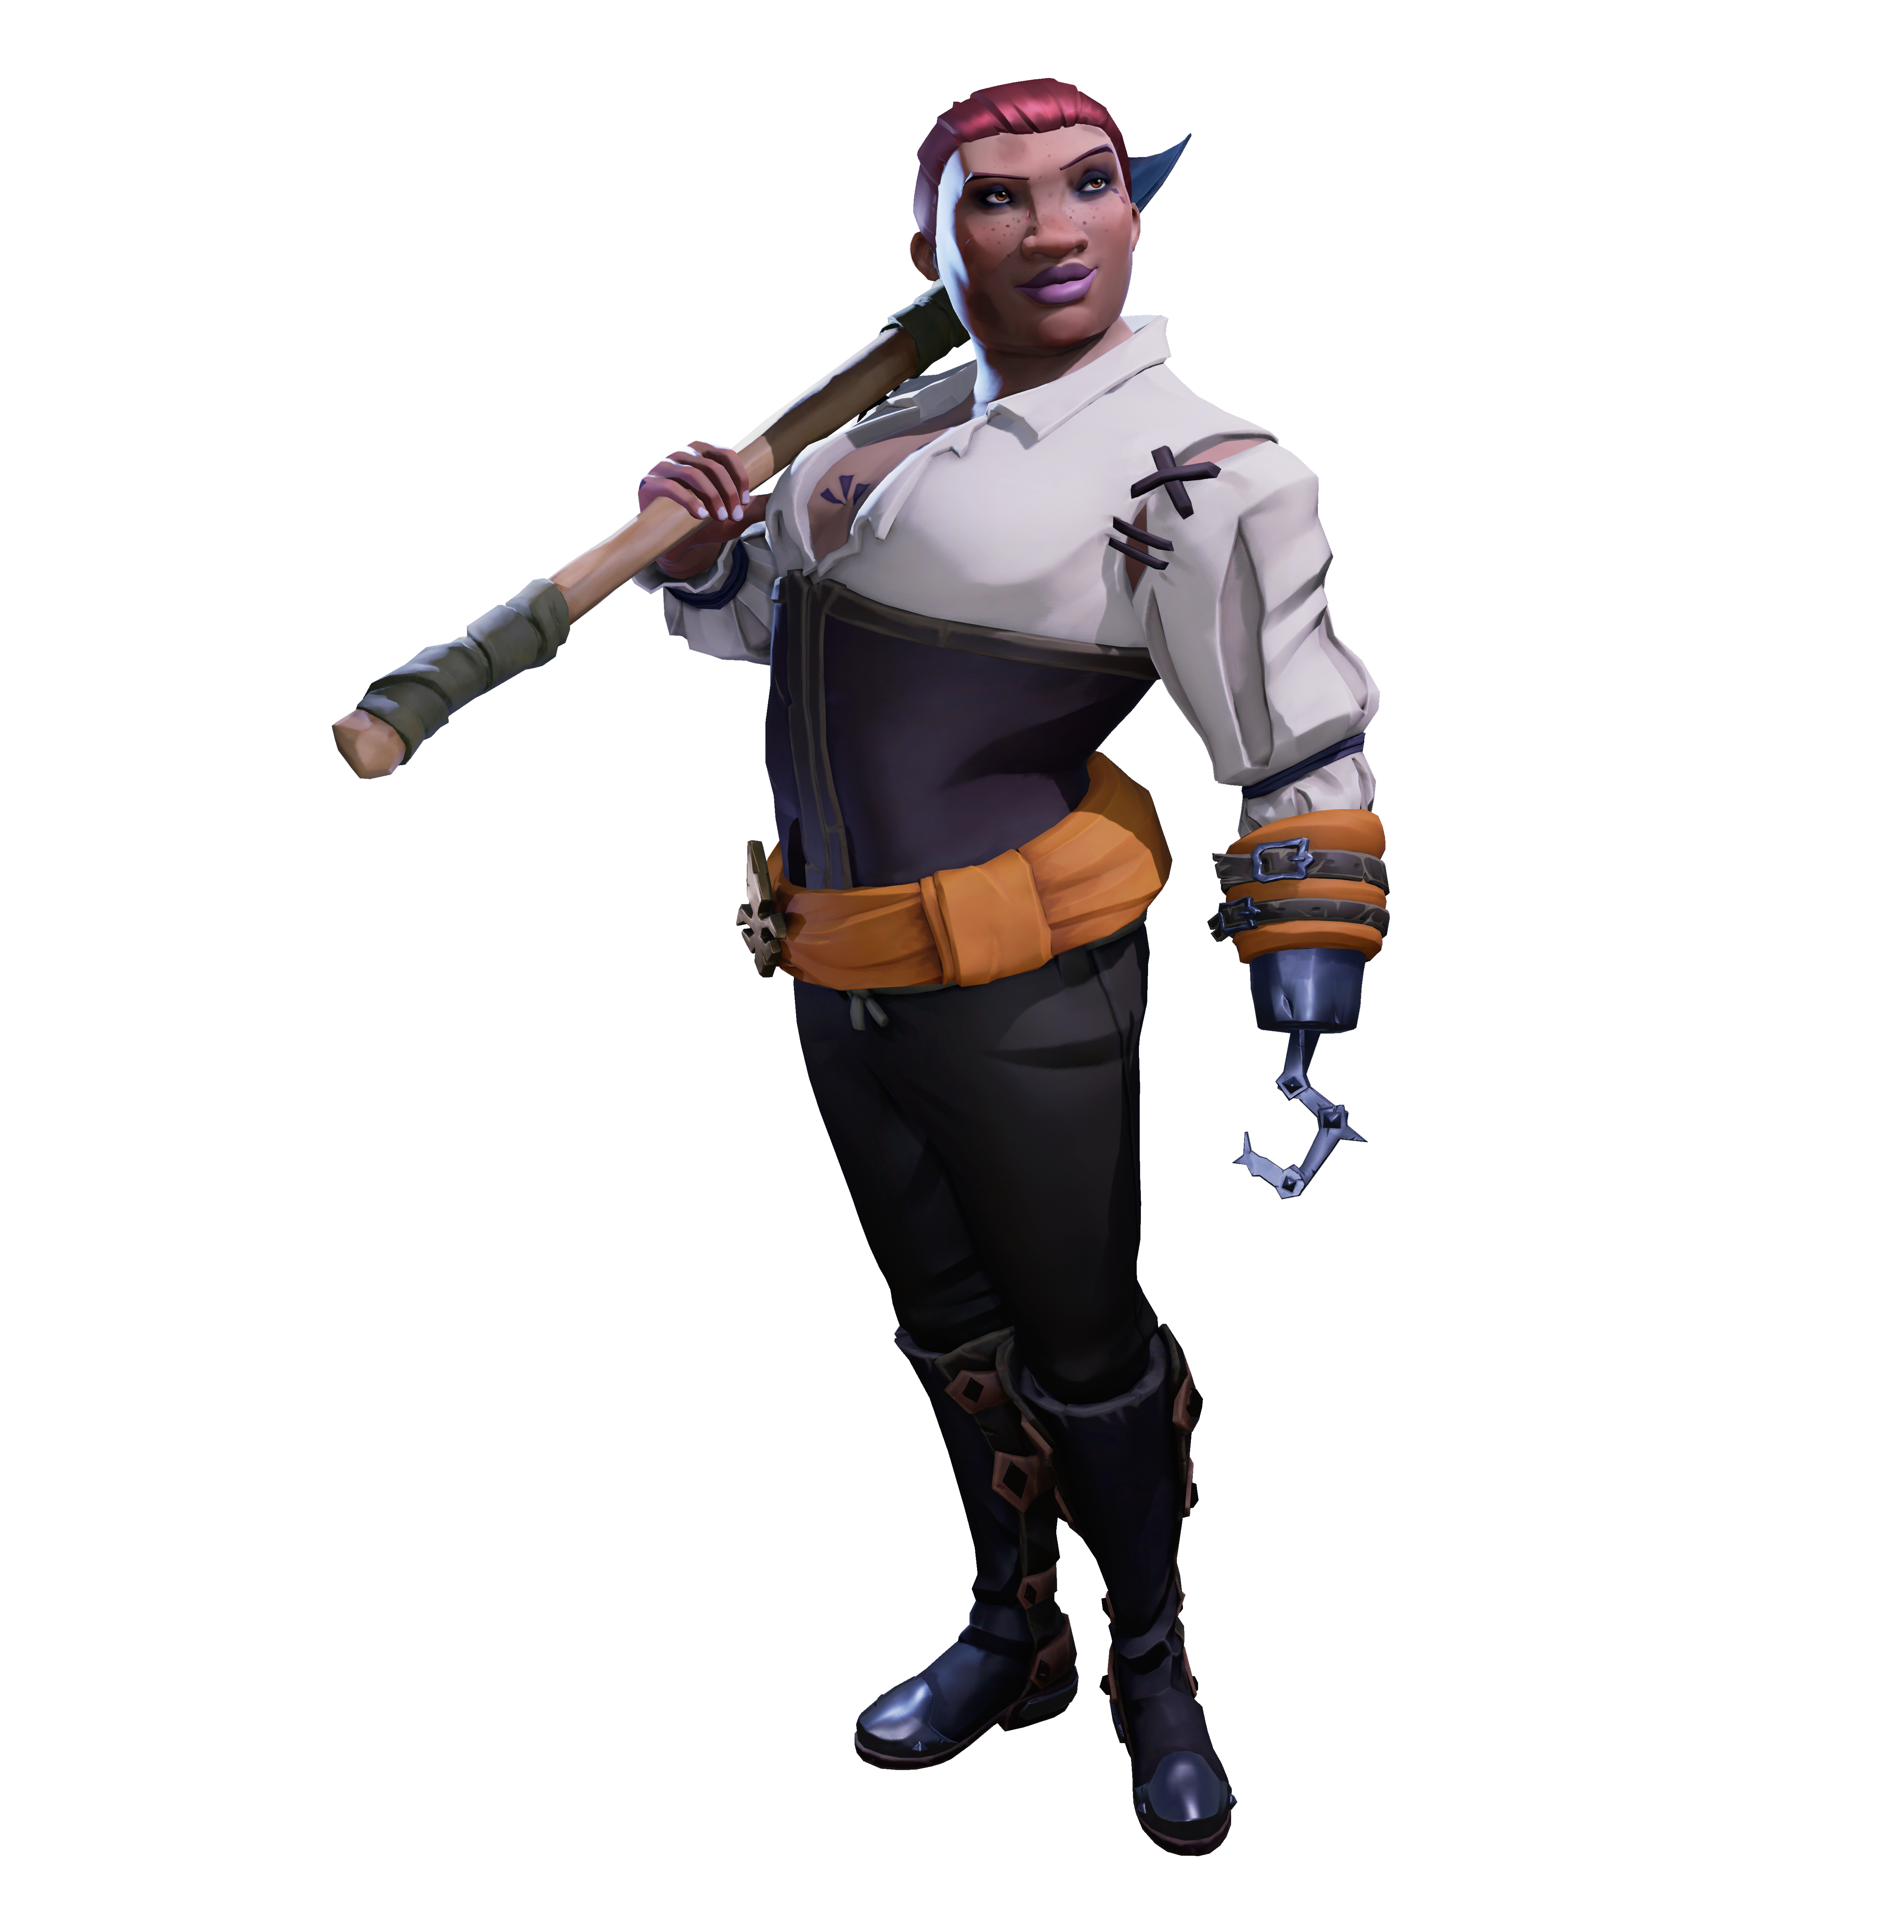 Sea of Thieves Conquistador Pirate